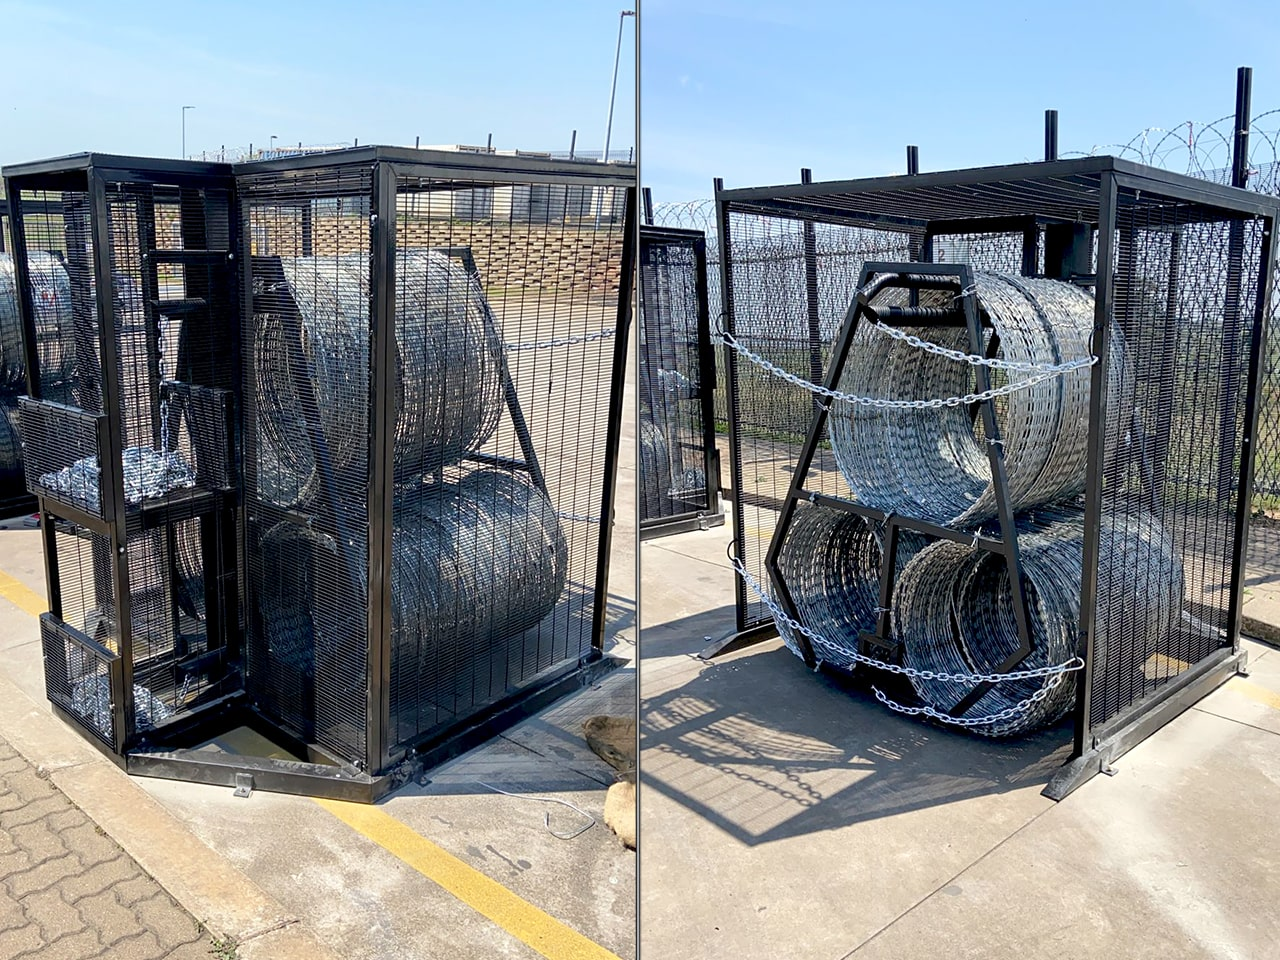 Gate protection boxes rapid deployment modules back and front view